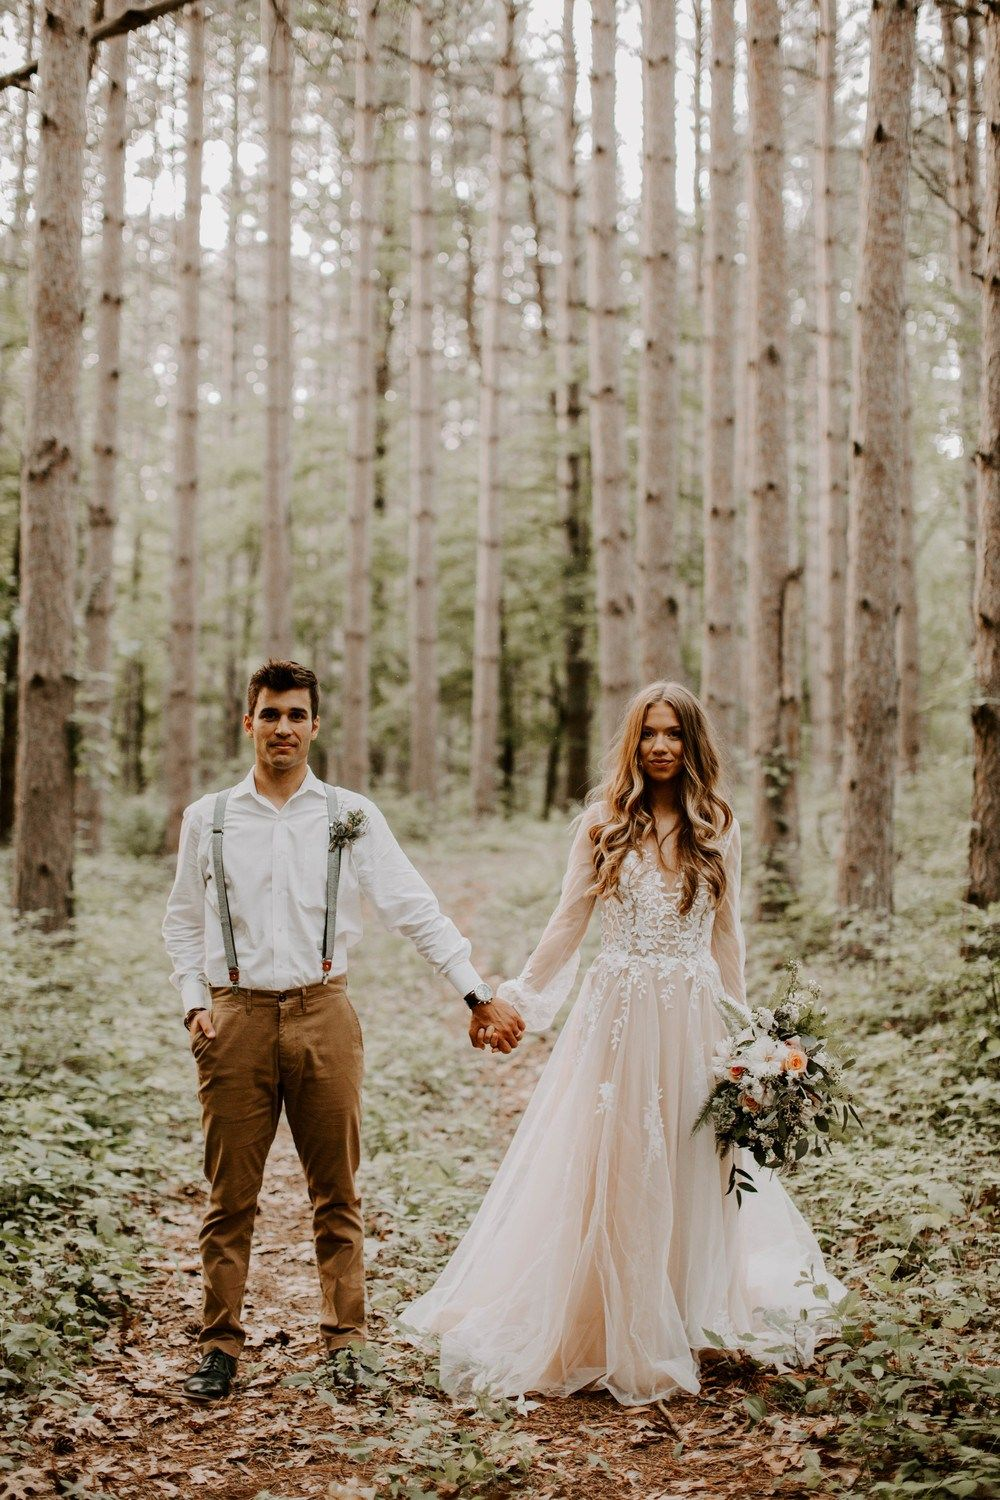 Early Fall Woodland Wedding Inspiration ⋆ Ruffled #fallscenery